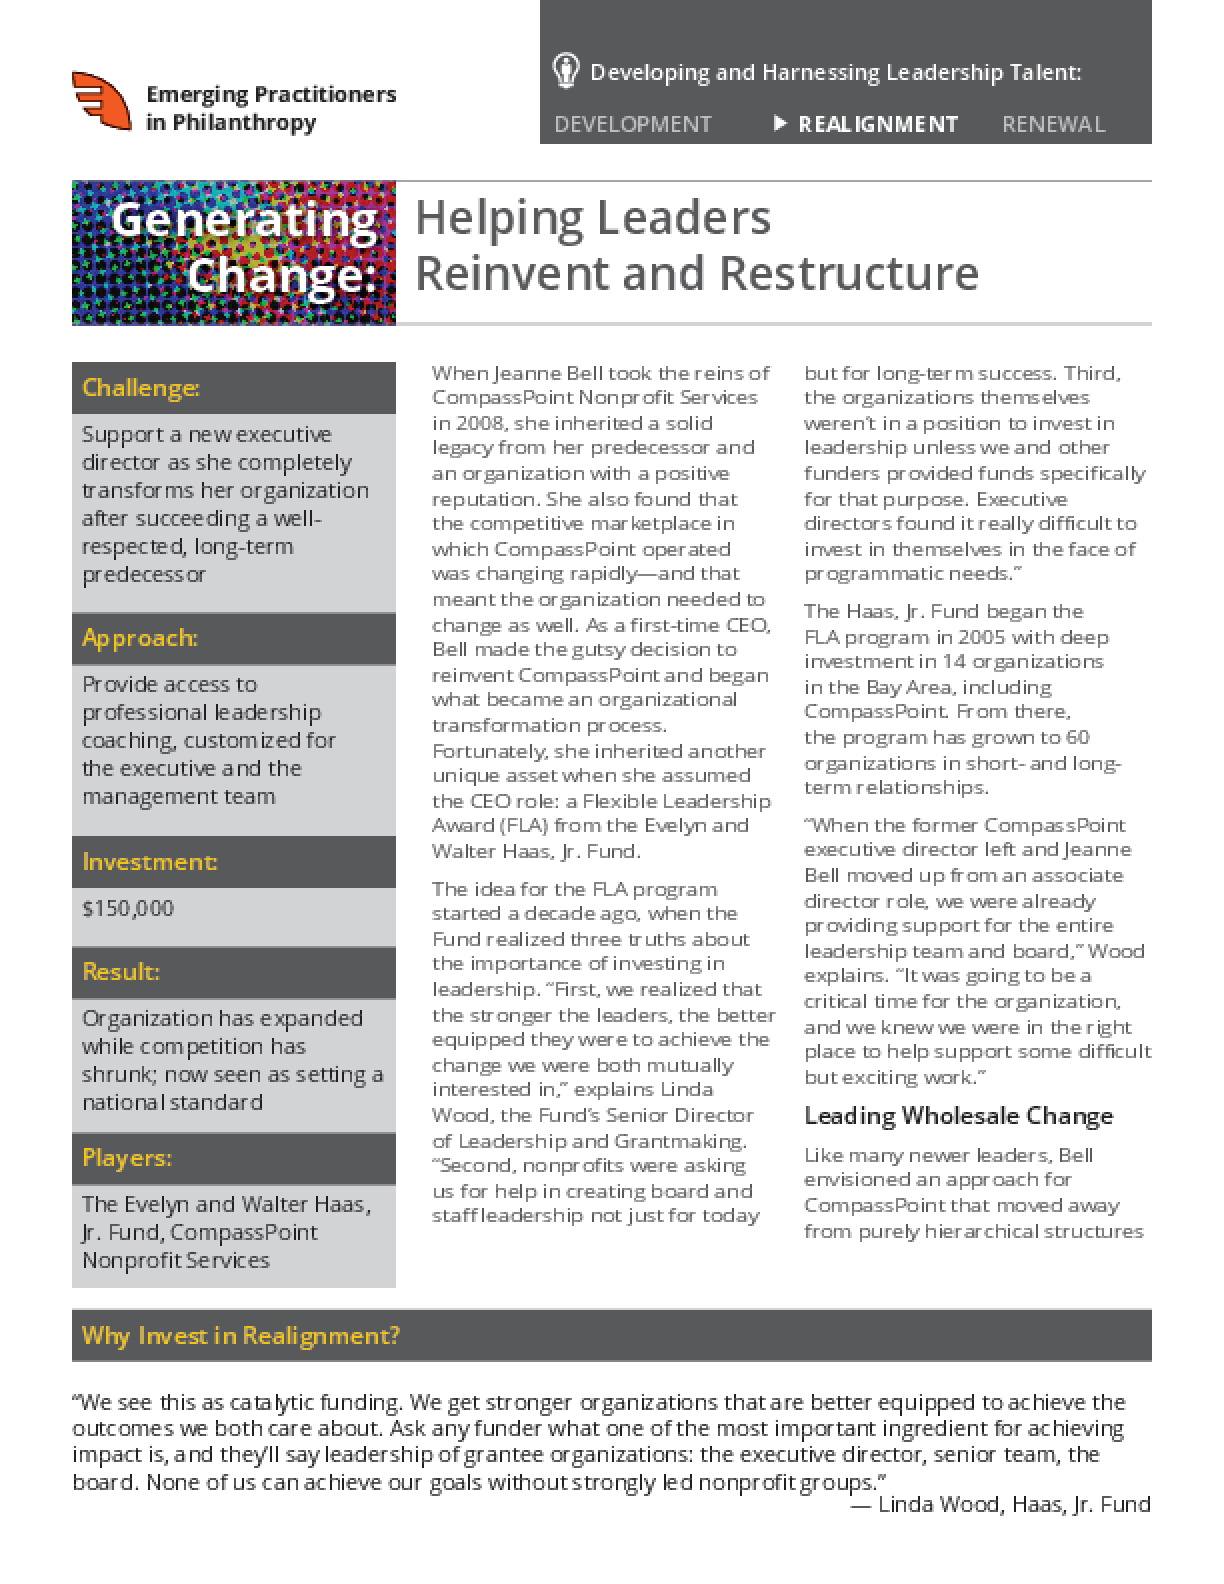 Generating Change: Helping Leaders Reinvent and Restructure